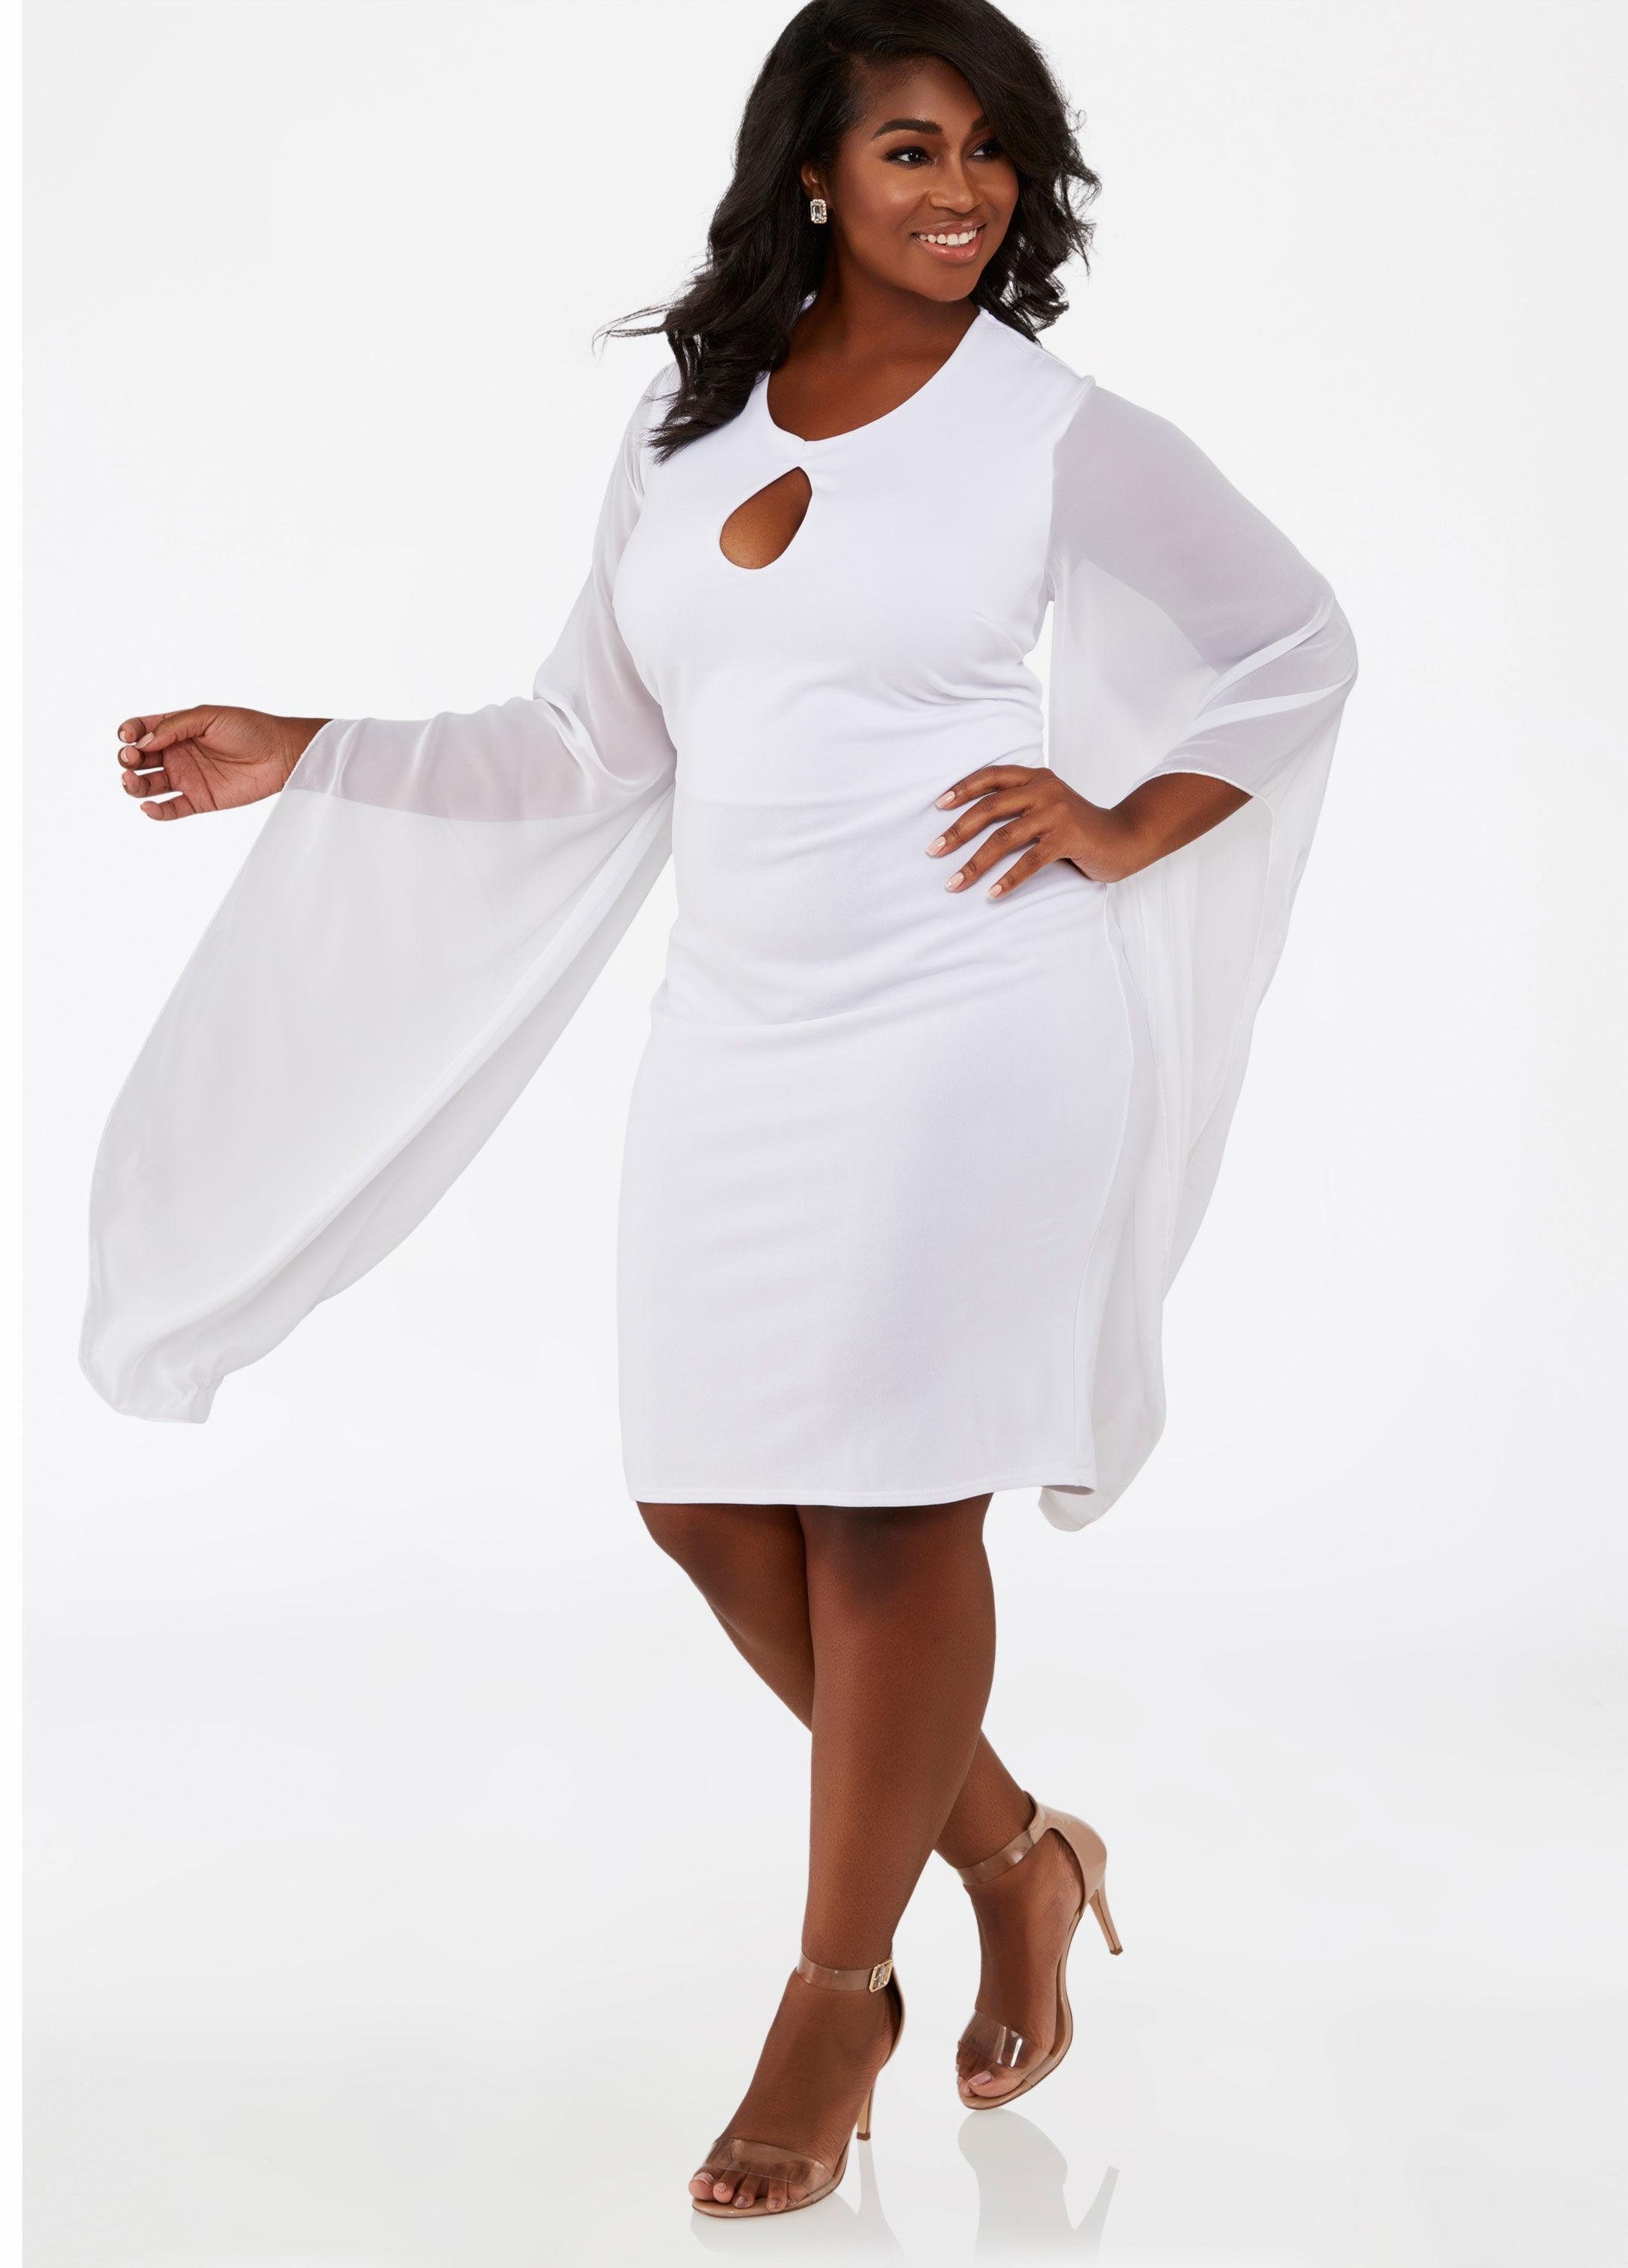 a4d0d08121d Lyst - Ashley Stewart Plus Size Chiffon Sleeve Keyhole Dress in White